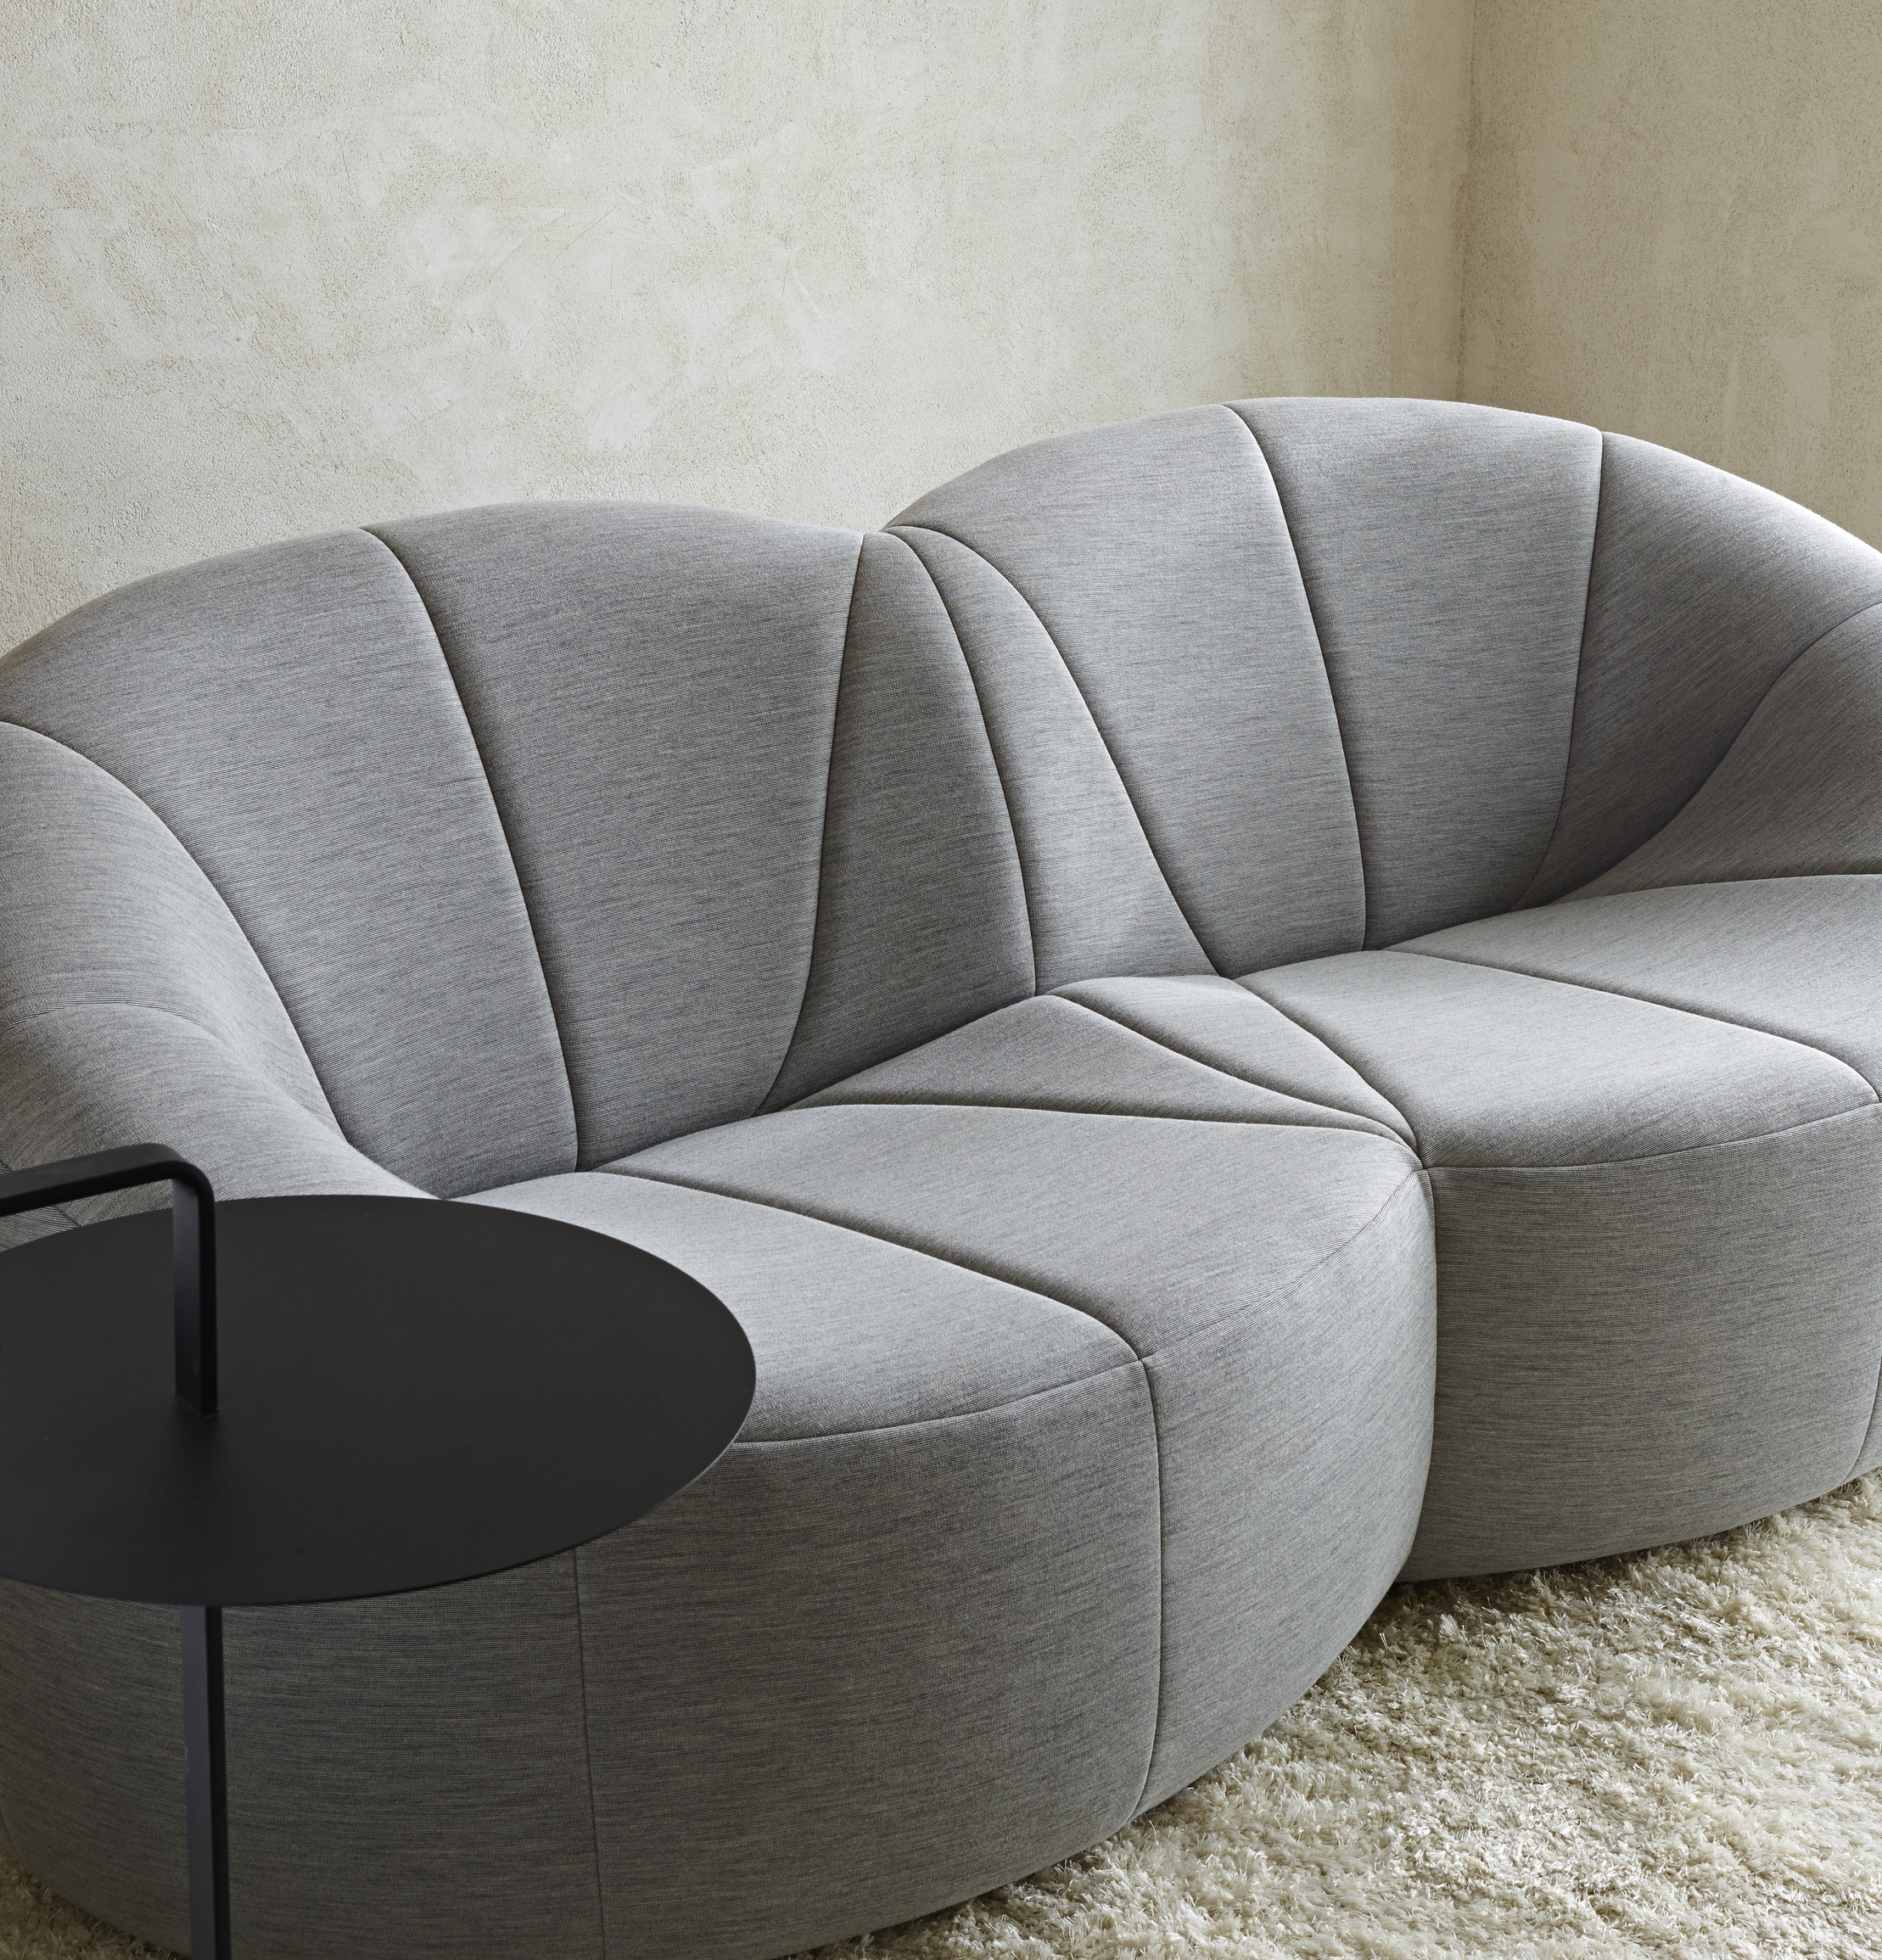 Pierre Paulin Sofa Pumpkin Sofas From Designer Pierre Paulin Ligne Roset